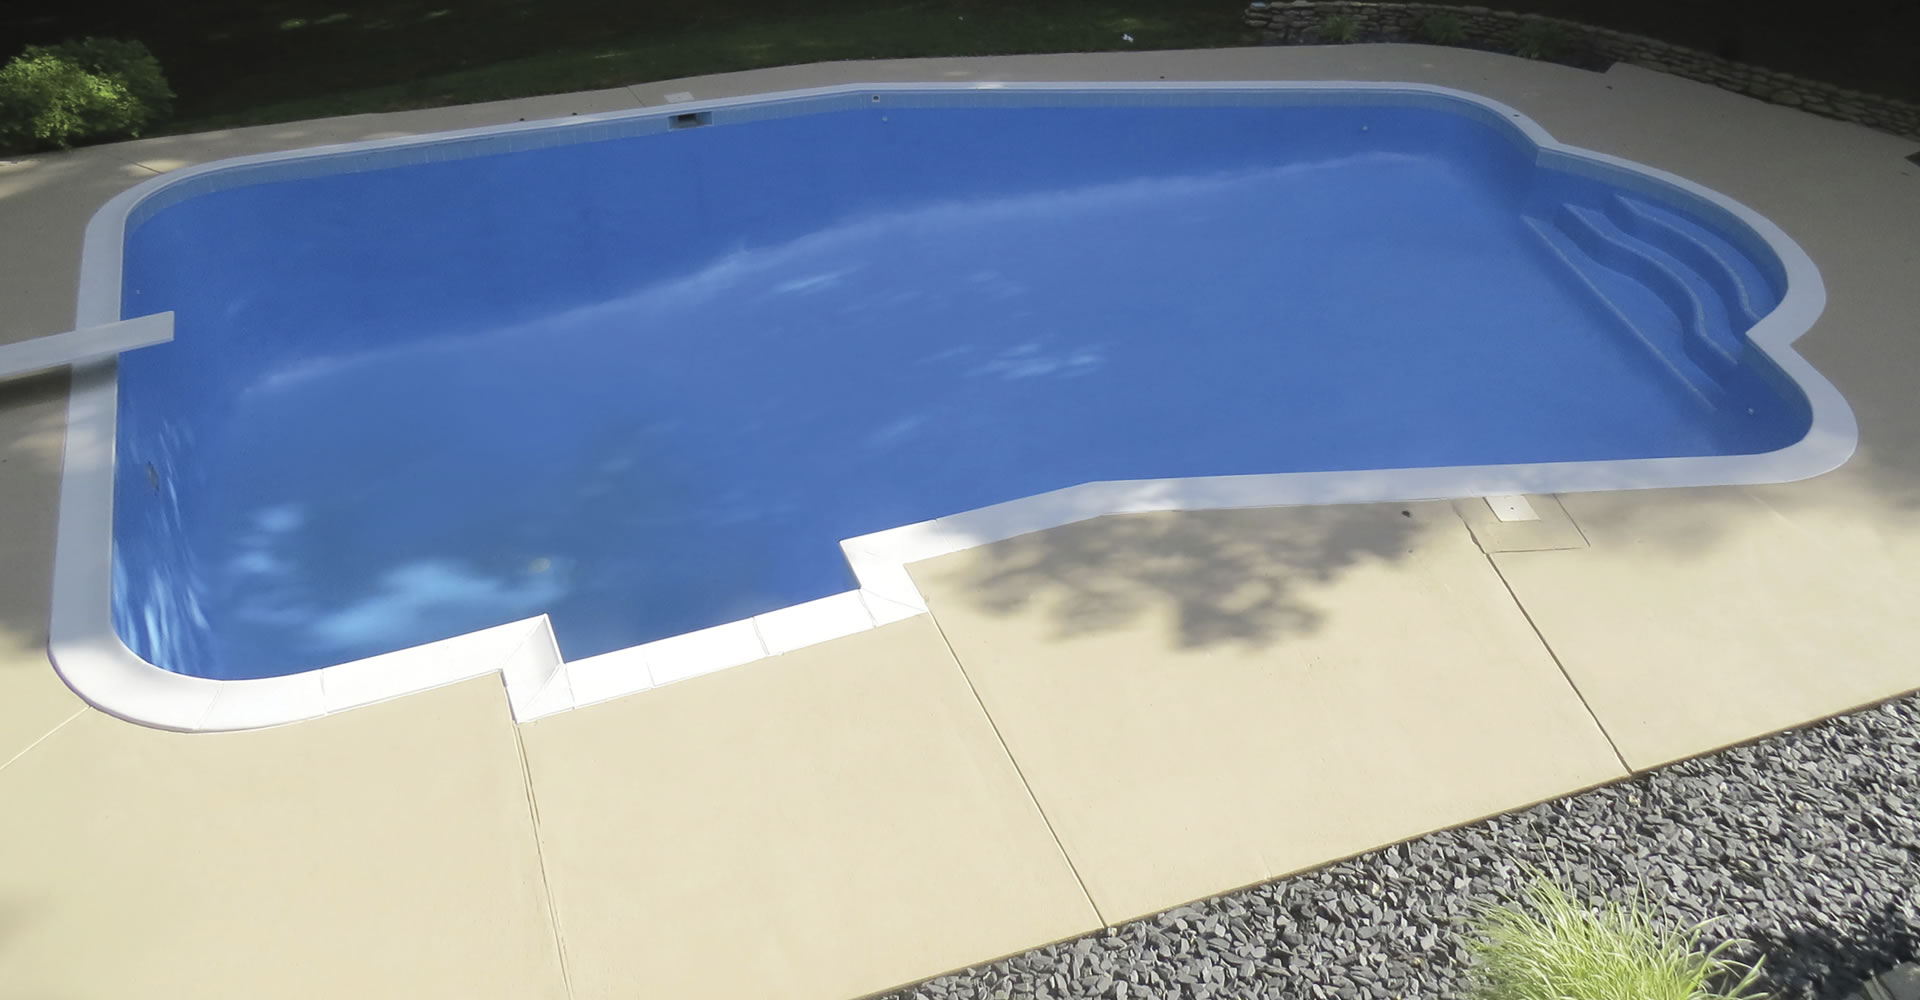 Swimming Pool, Deck and Patio Paint, Sealers & Coatings ...